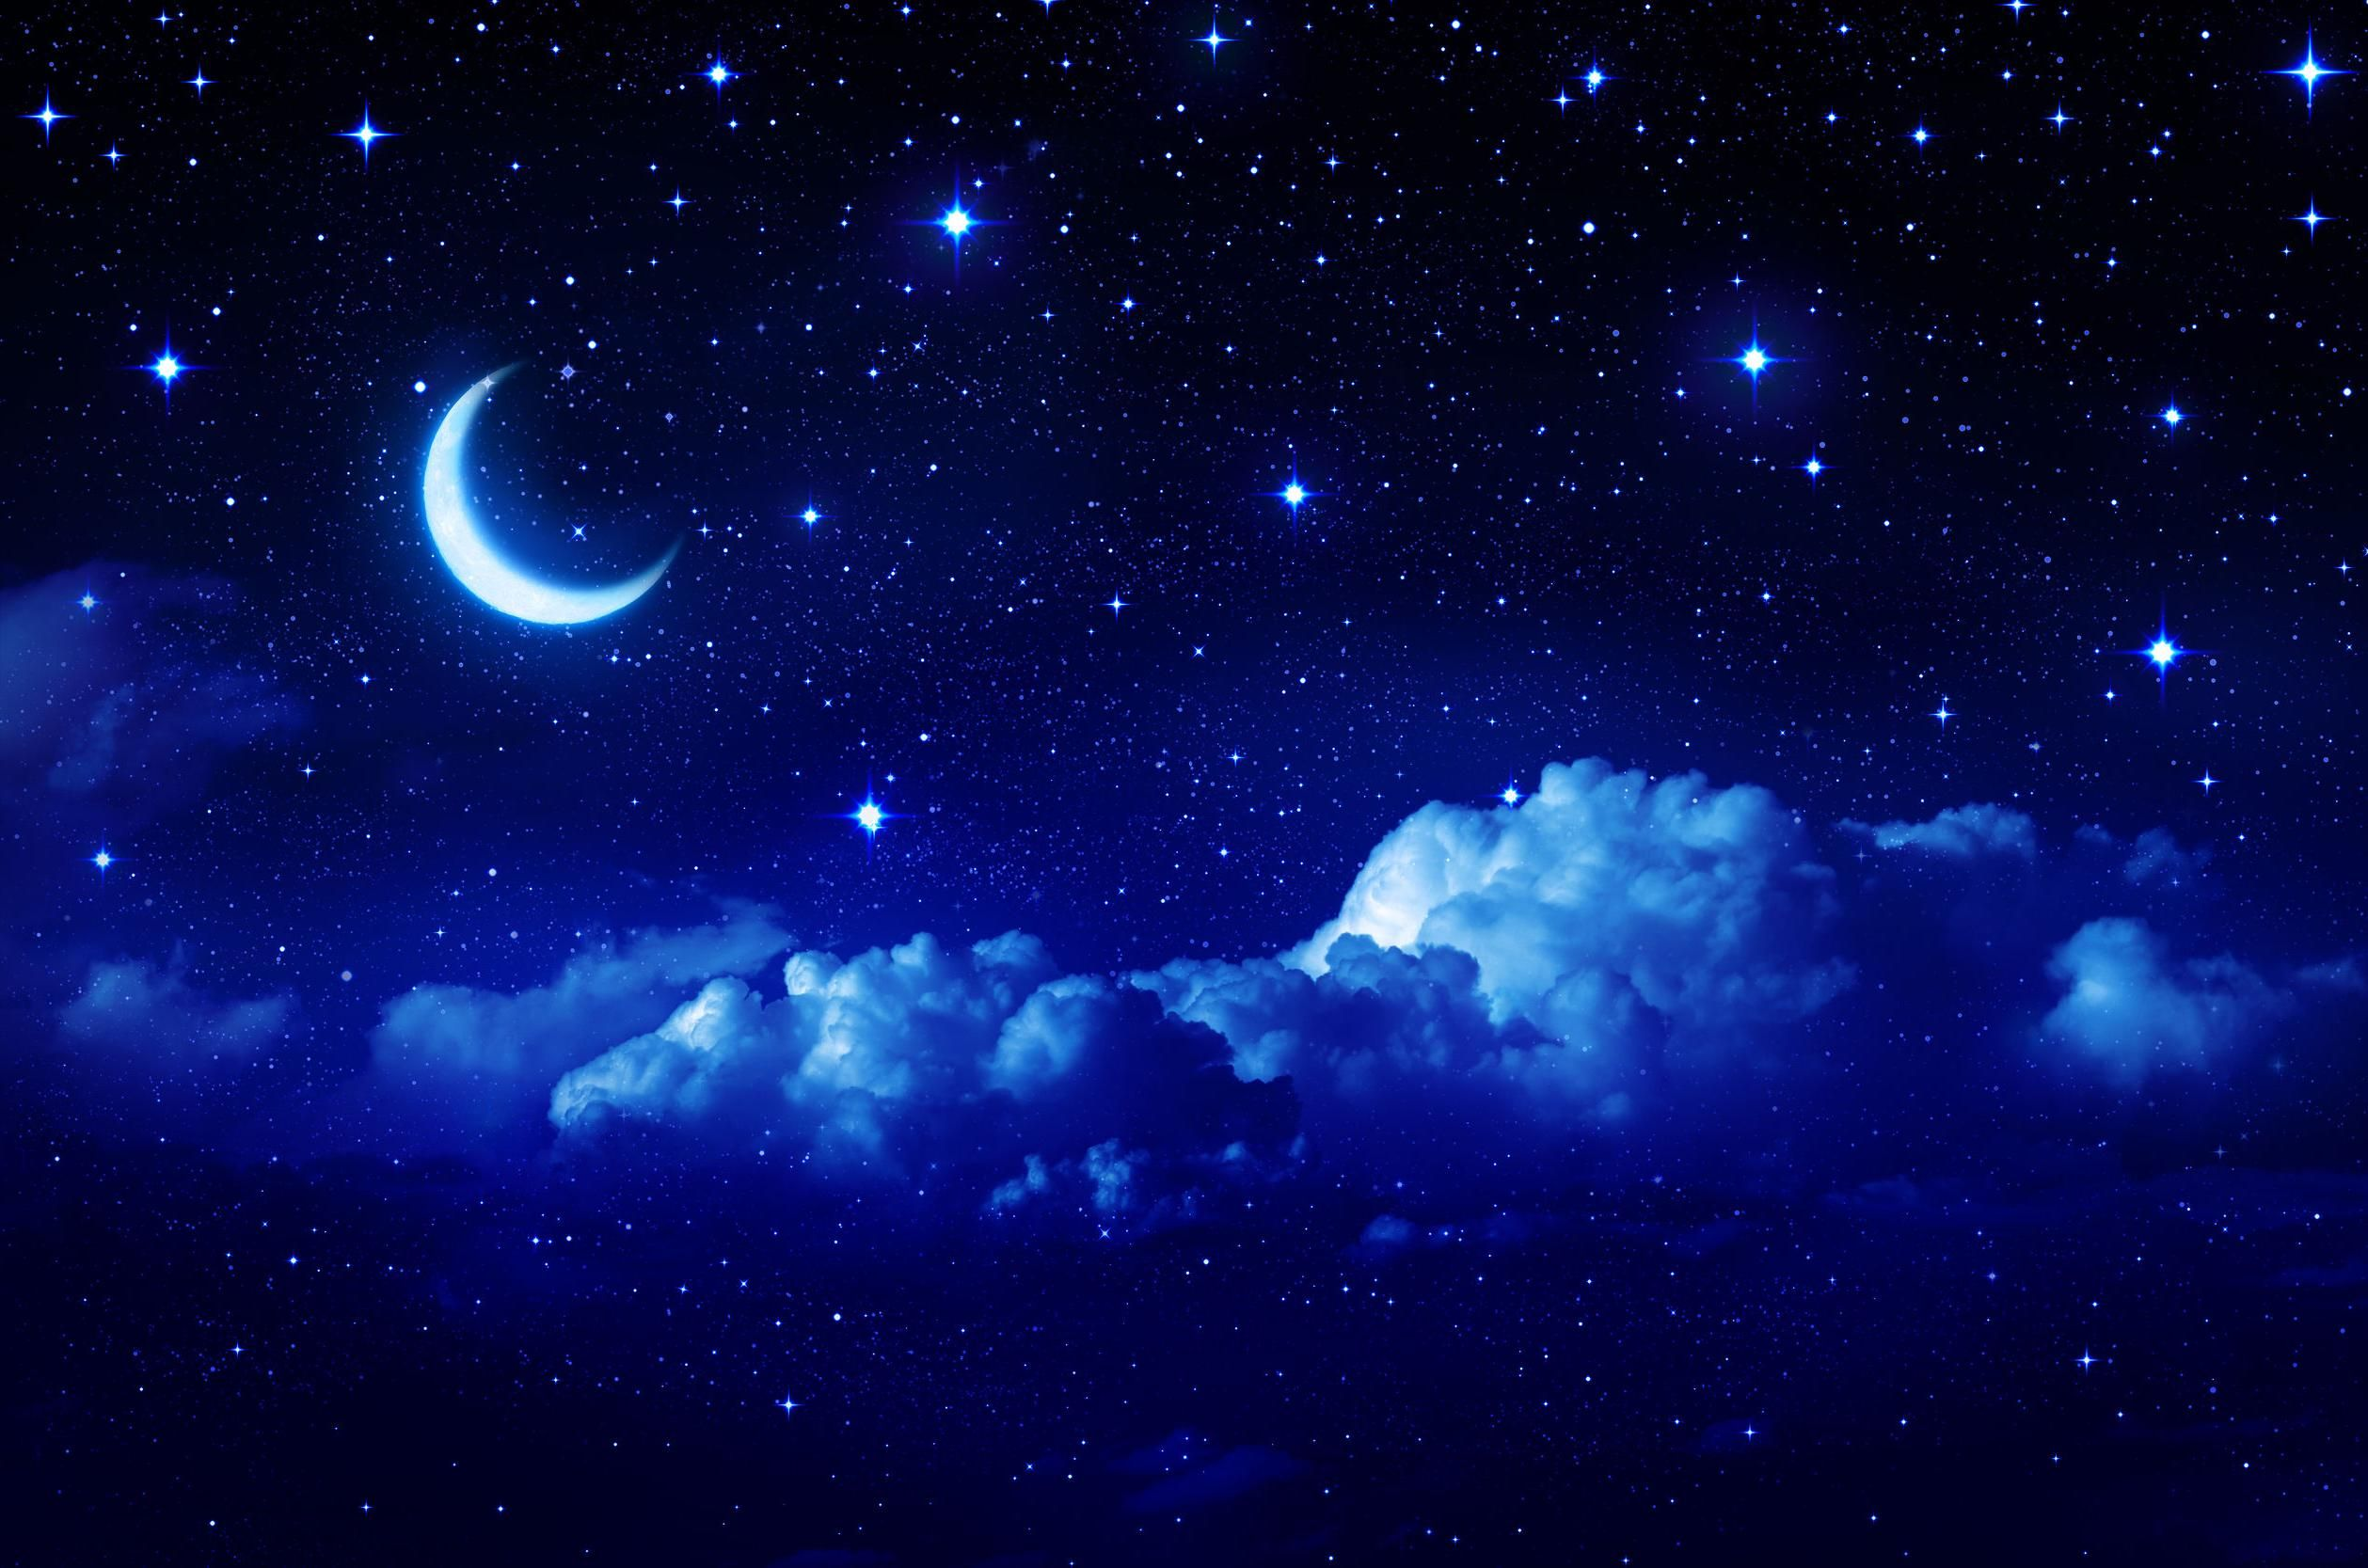 Blue Night Sky Wallpaper Free Download Night sky